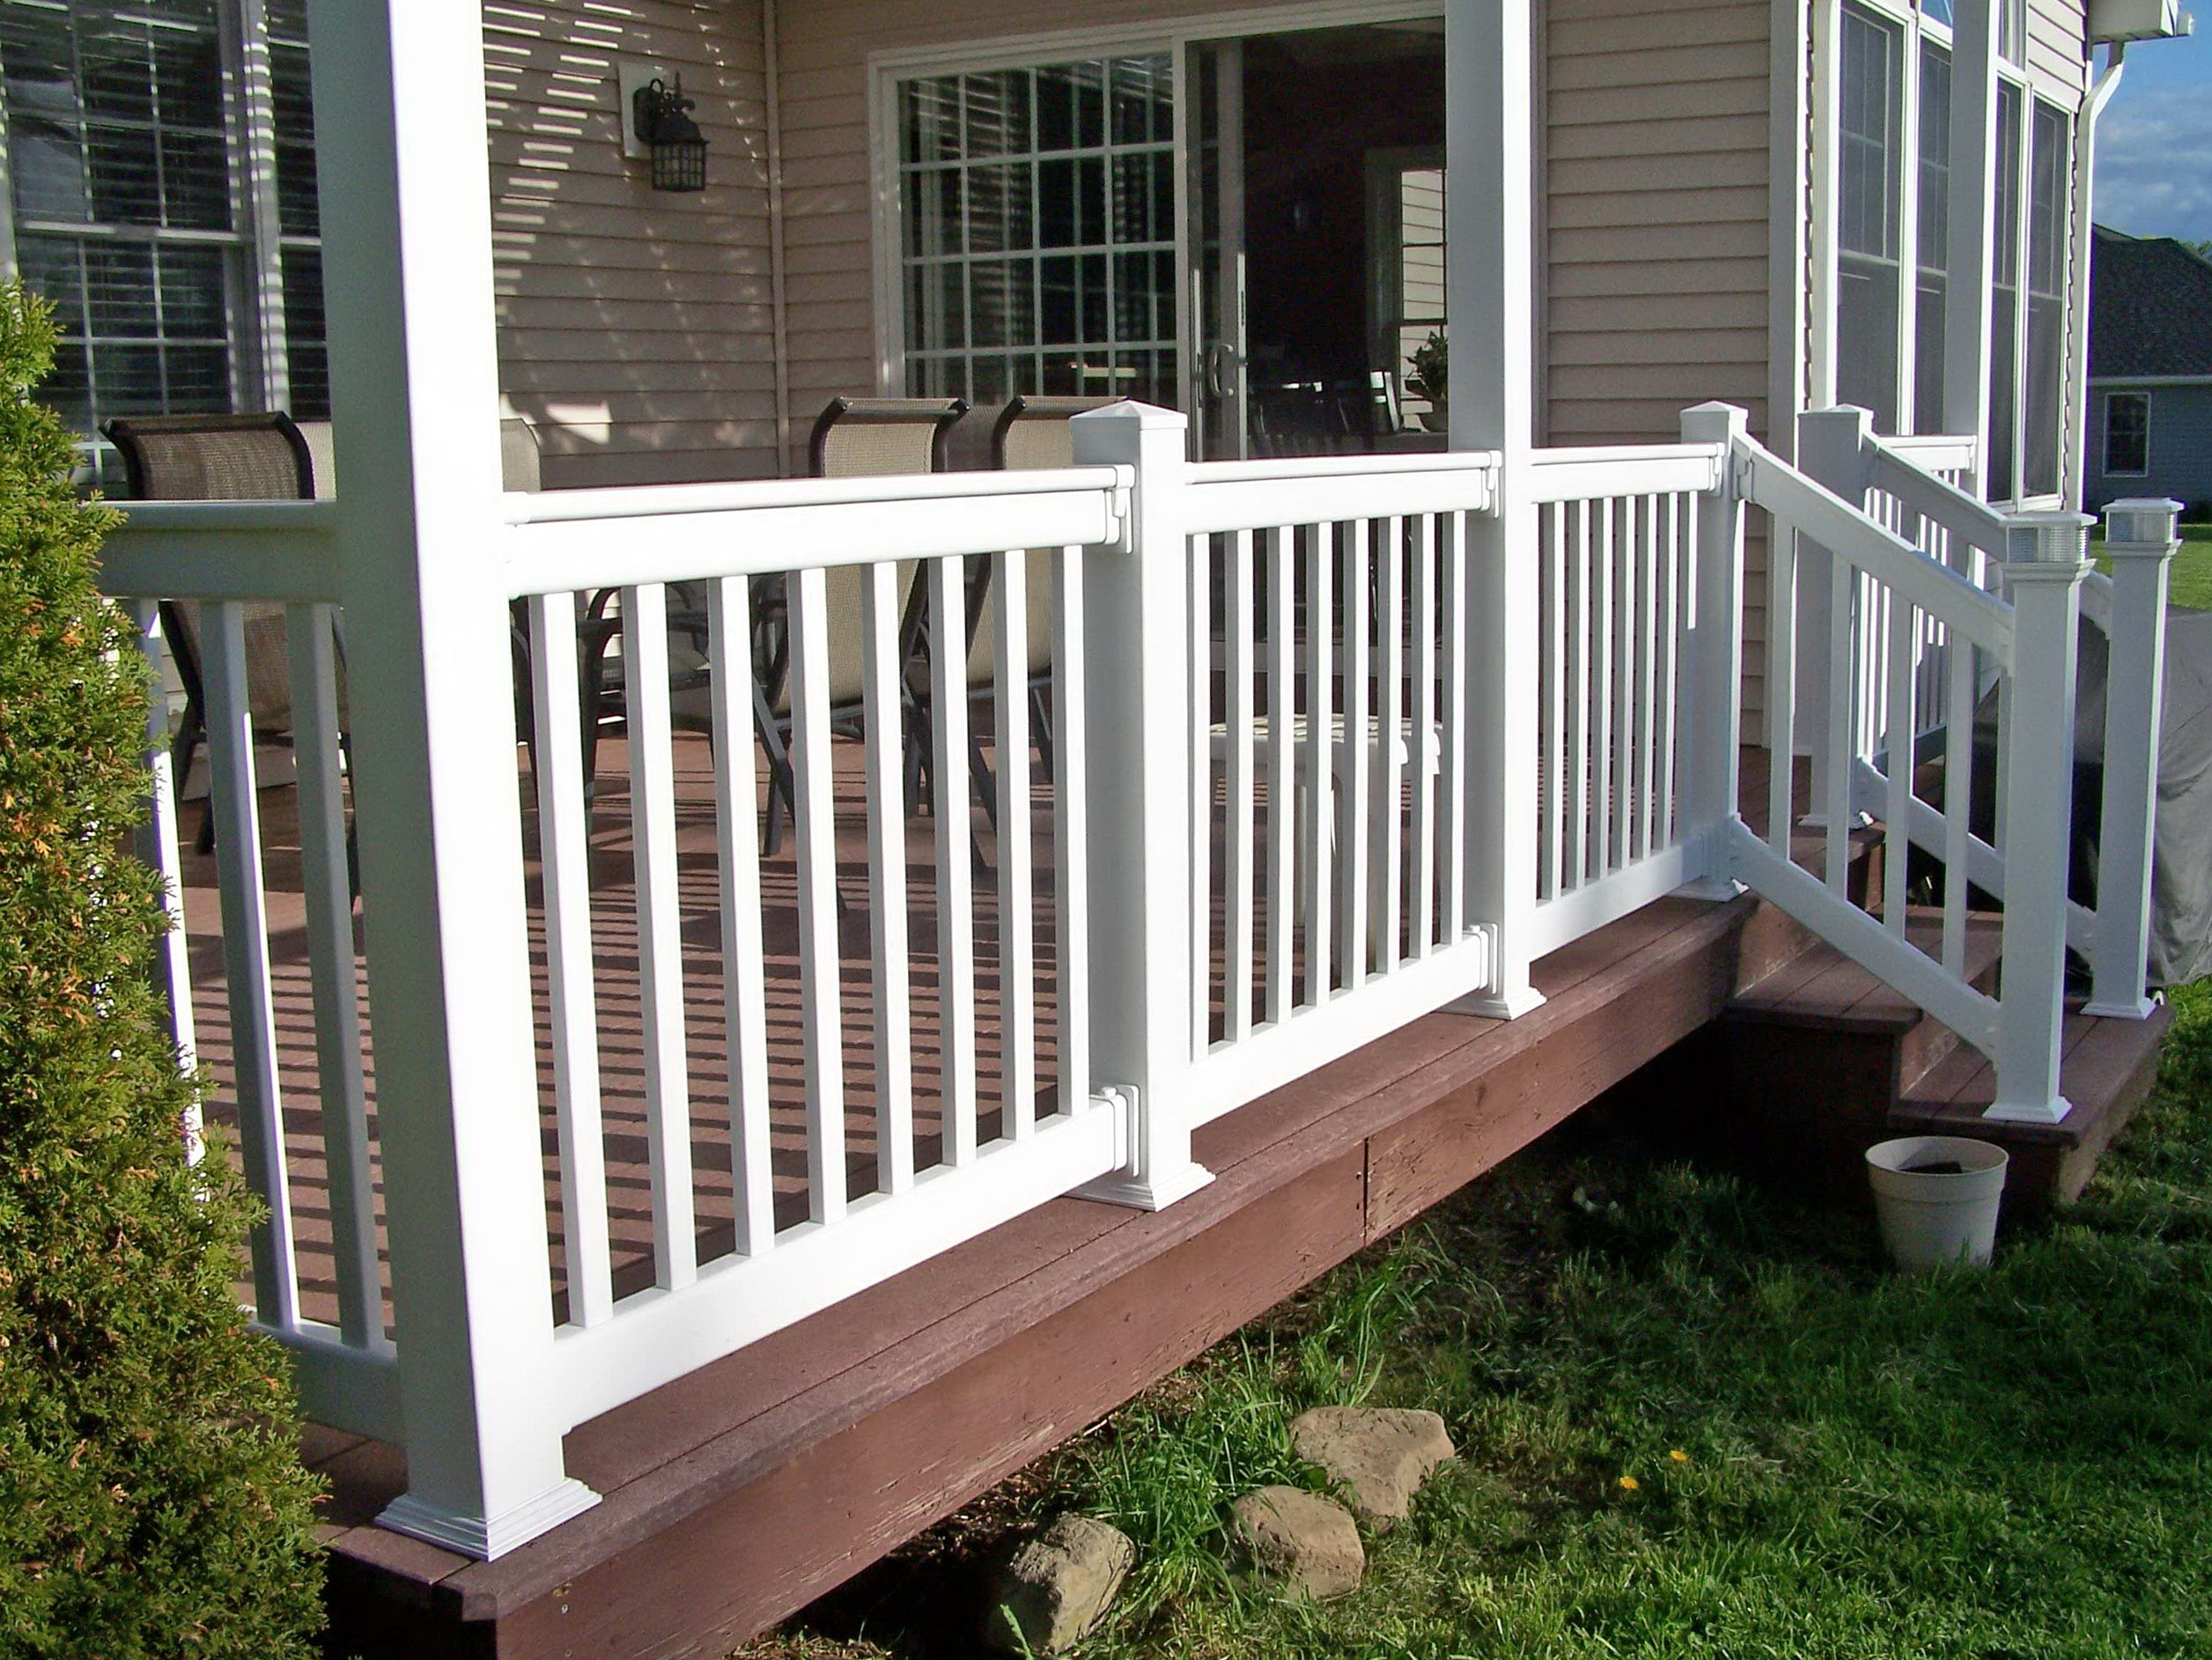 Vinyl porch railing systems lowes 28 images vinyl railing lowes deck outstanding lowes - Vinyl deck railing lowes ...